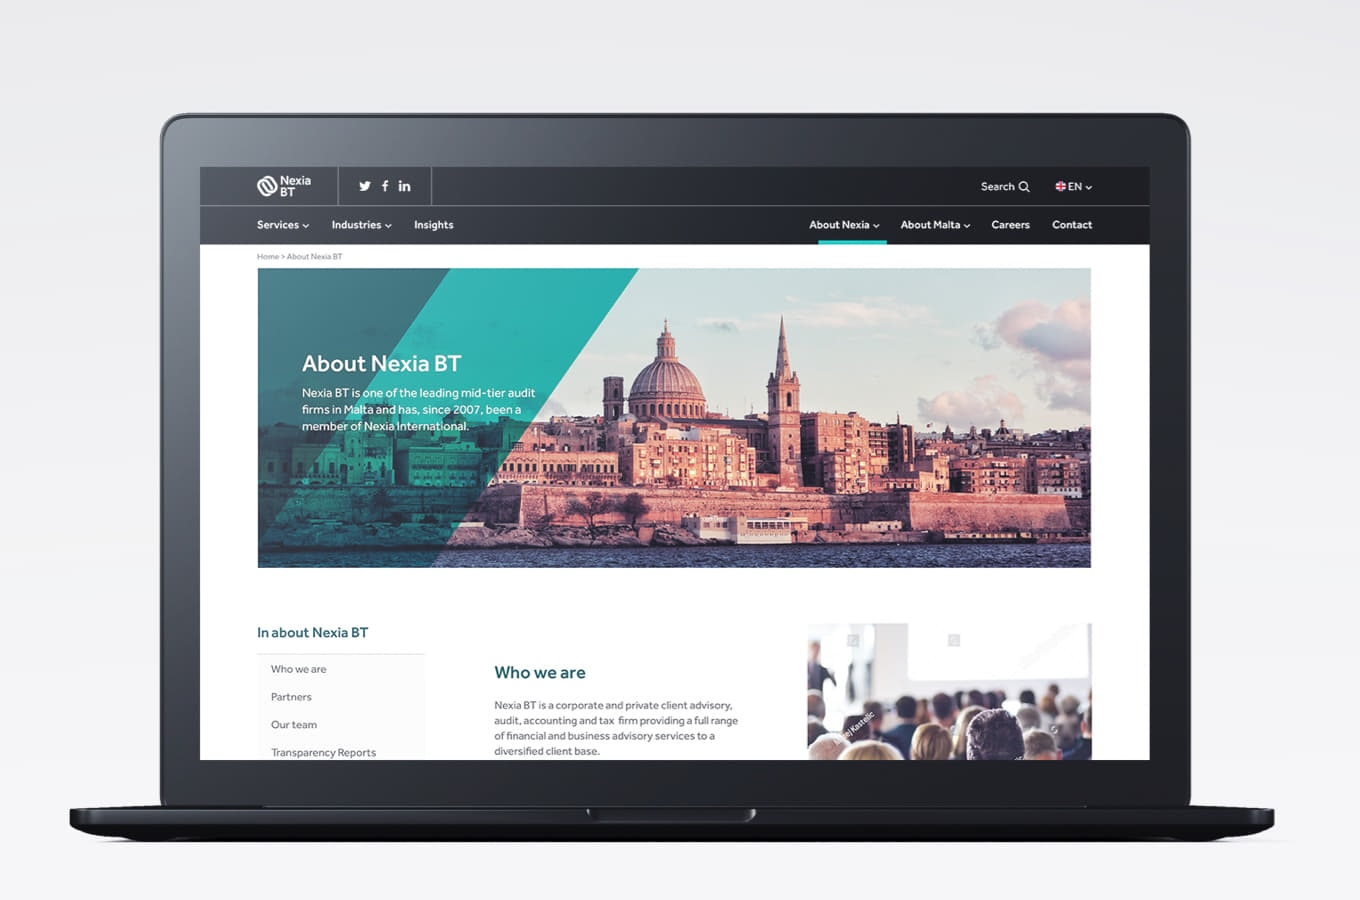 Desktop mock-up of the about Nexia BT page